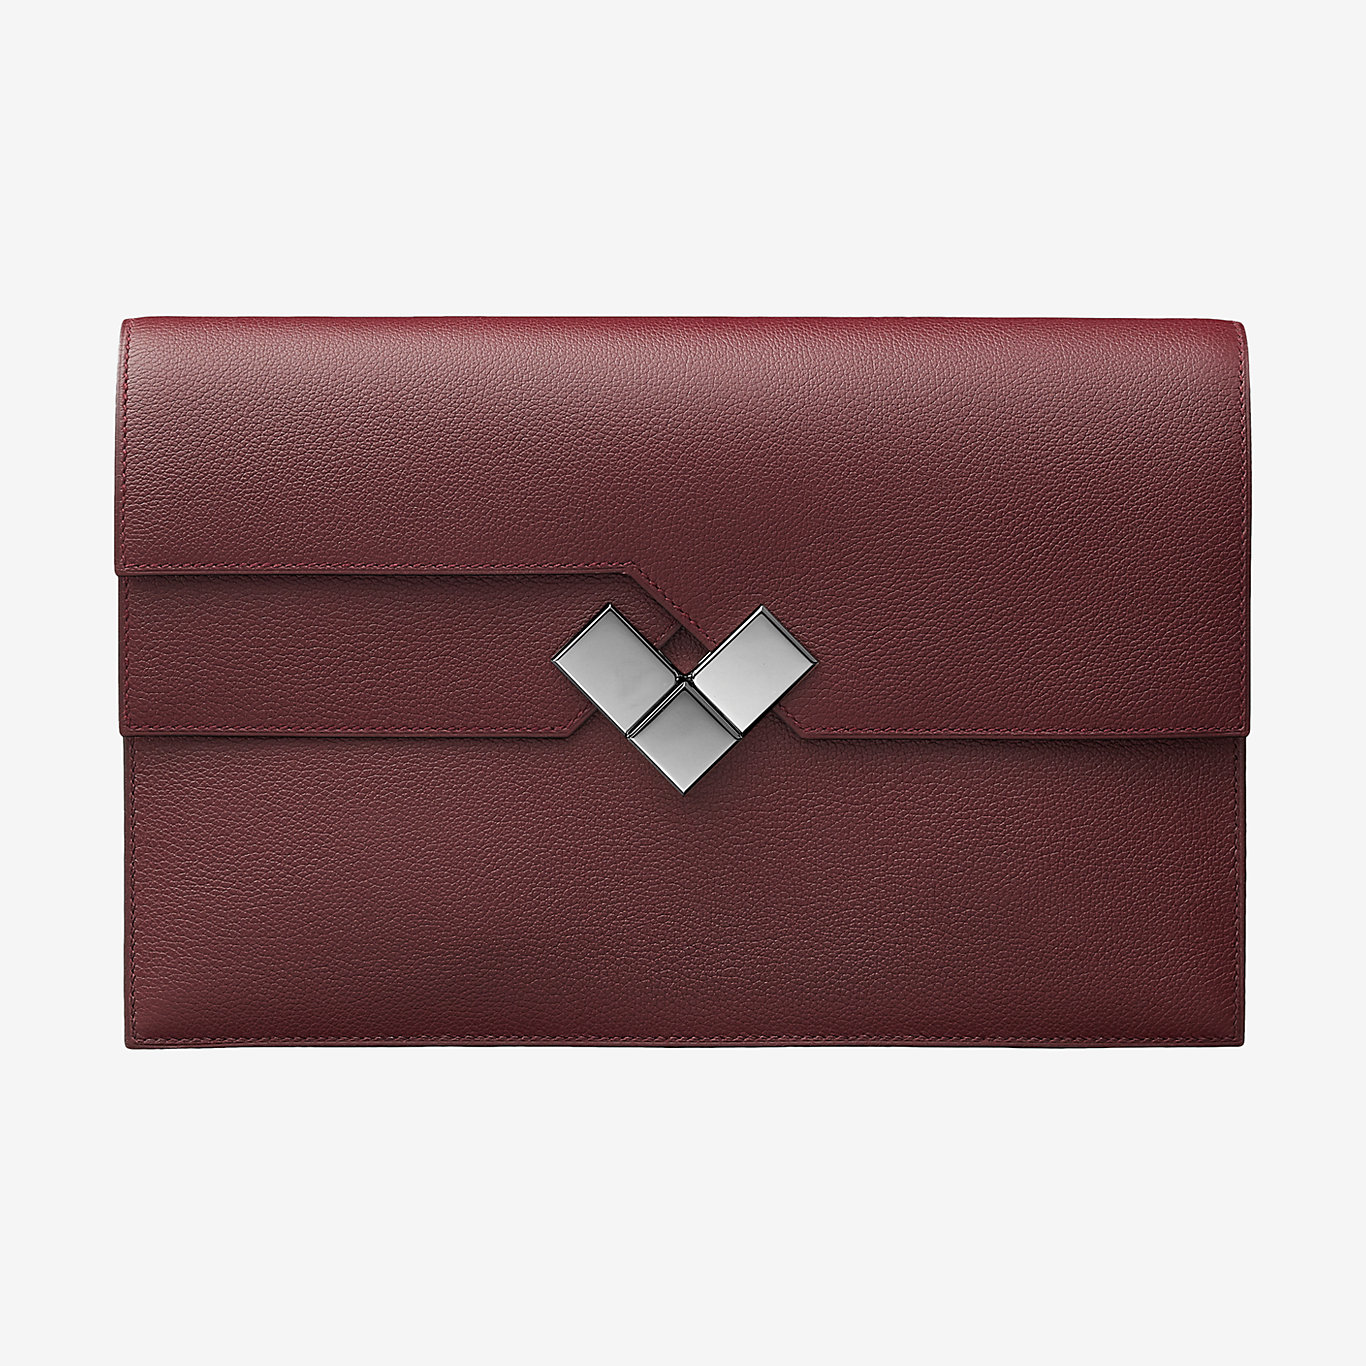 Fortunio clutch, medium model - front